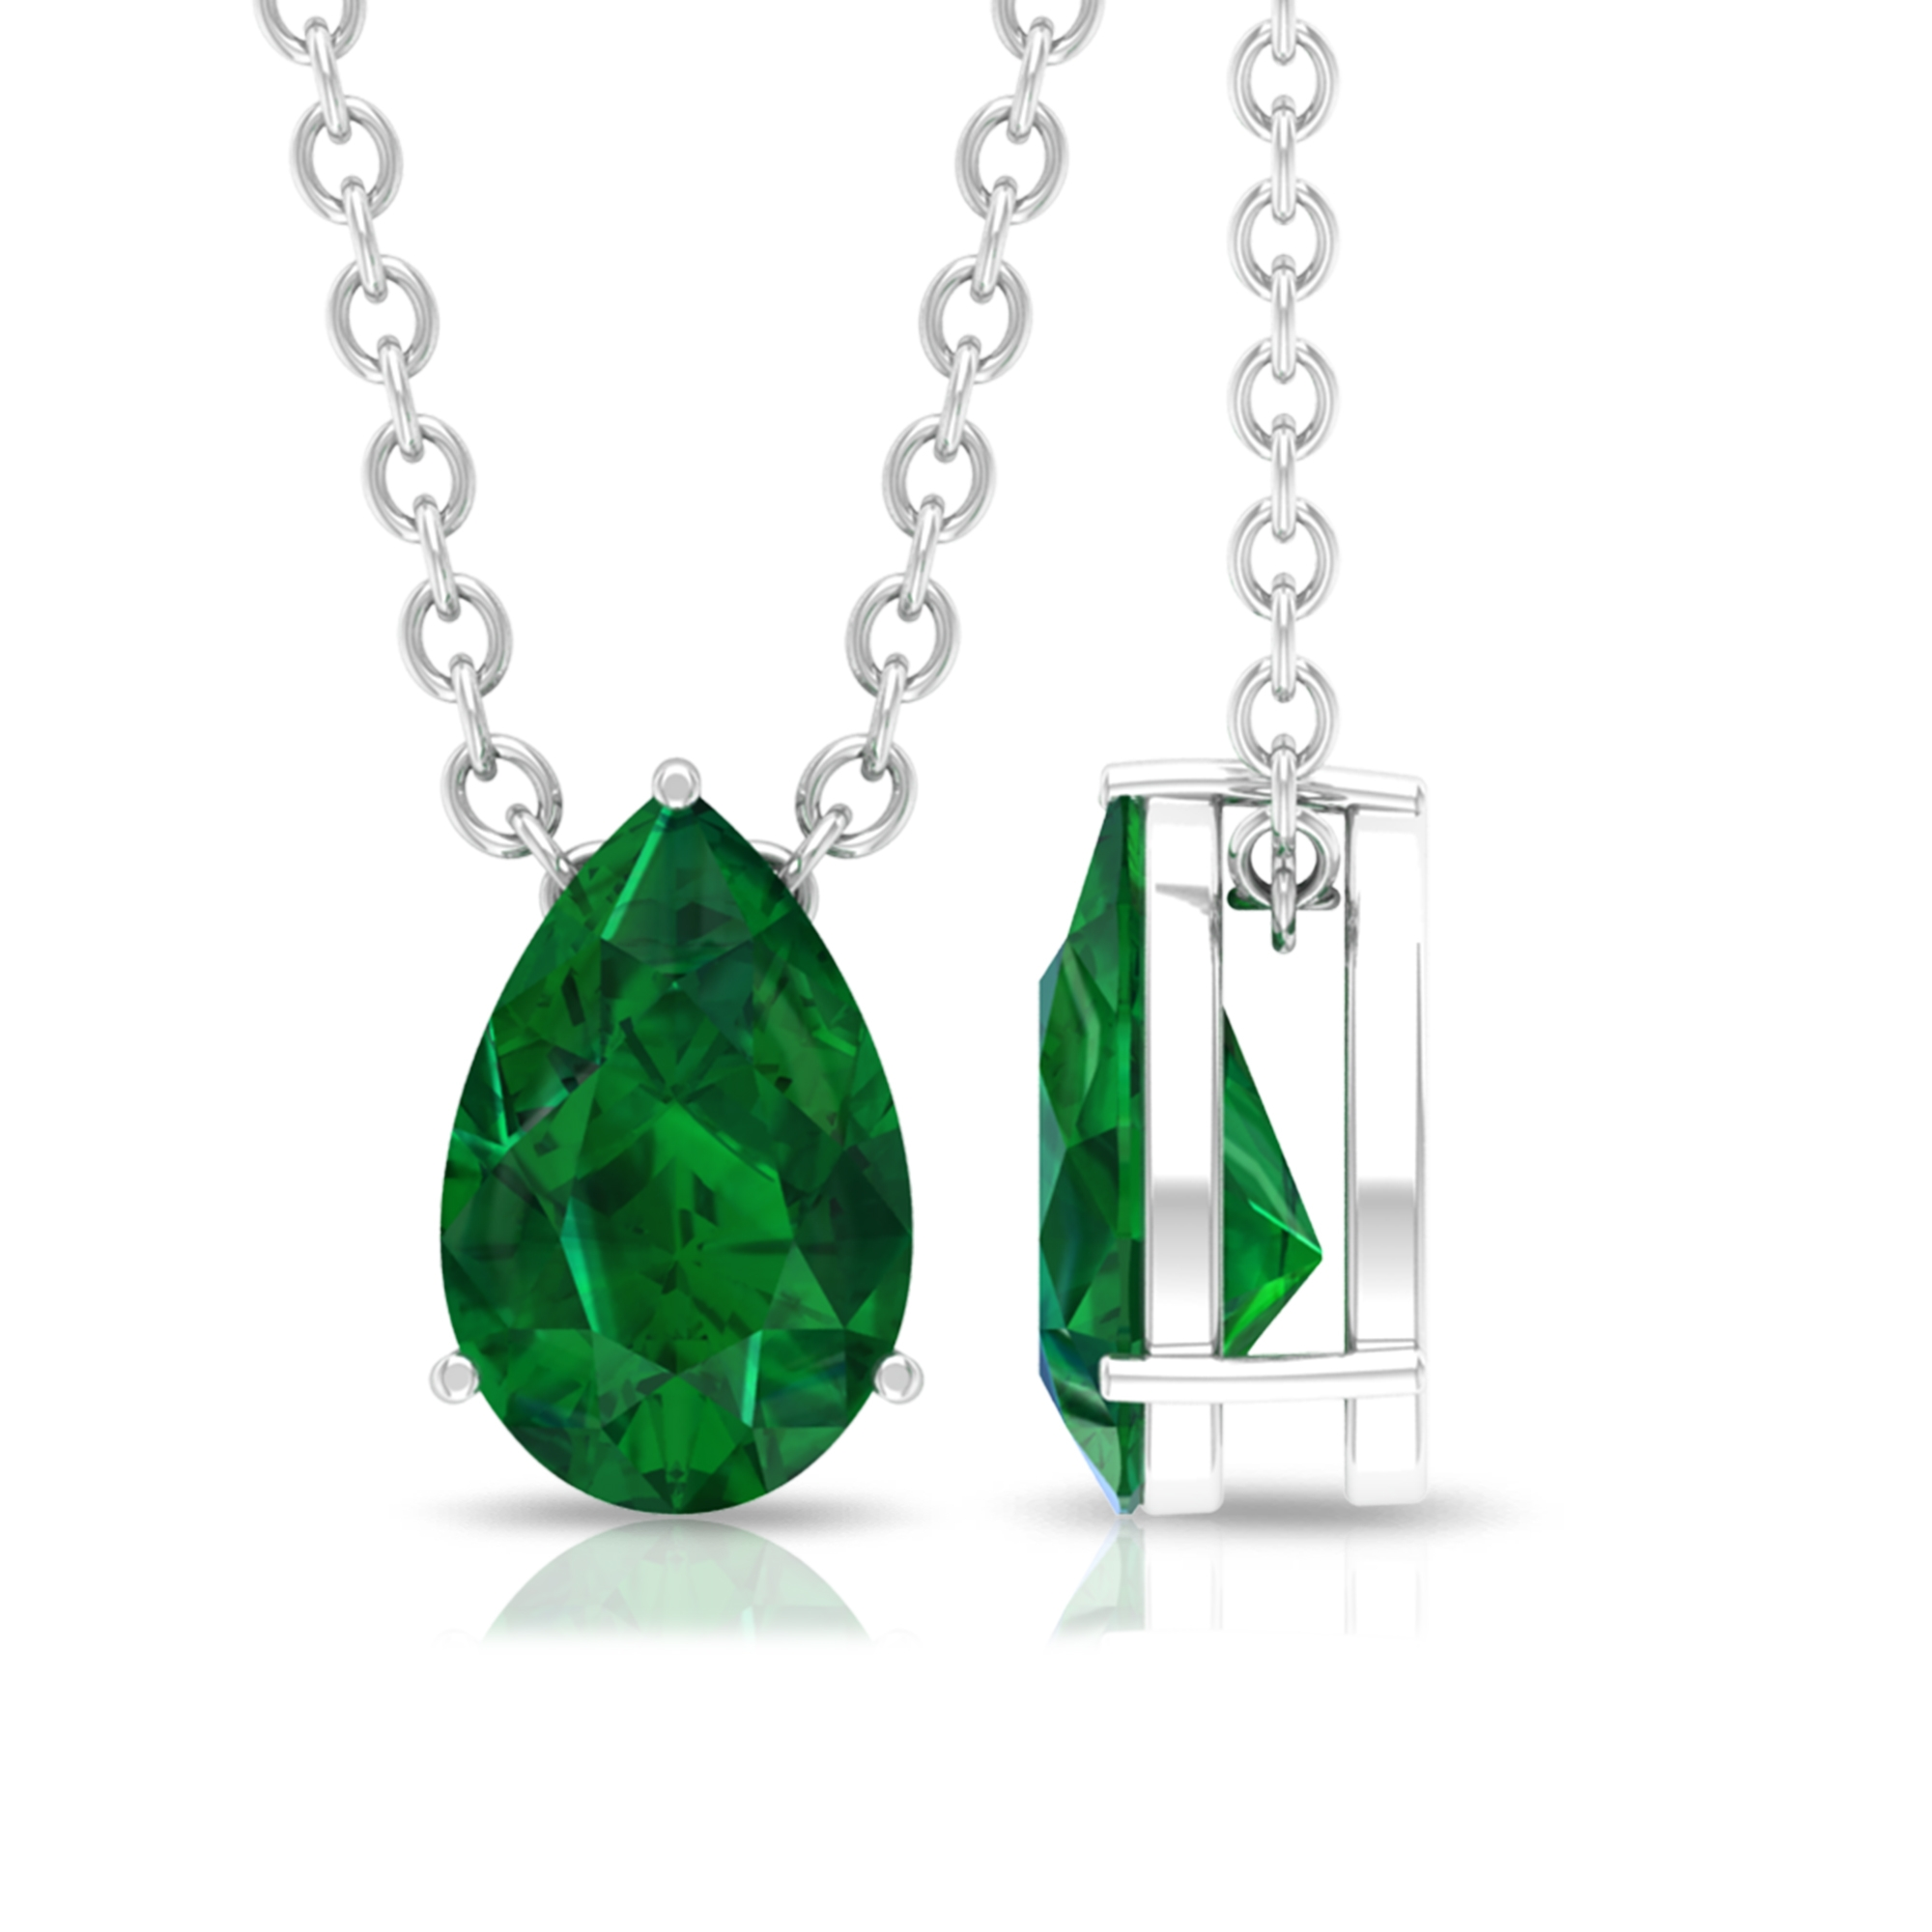 4.5X7 MM Teardrop Emerald Solitaire Pendant in 3 Prong Setting for Women